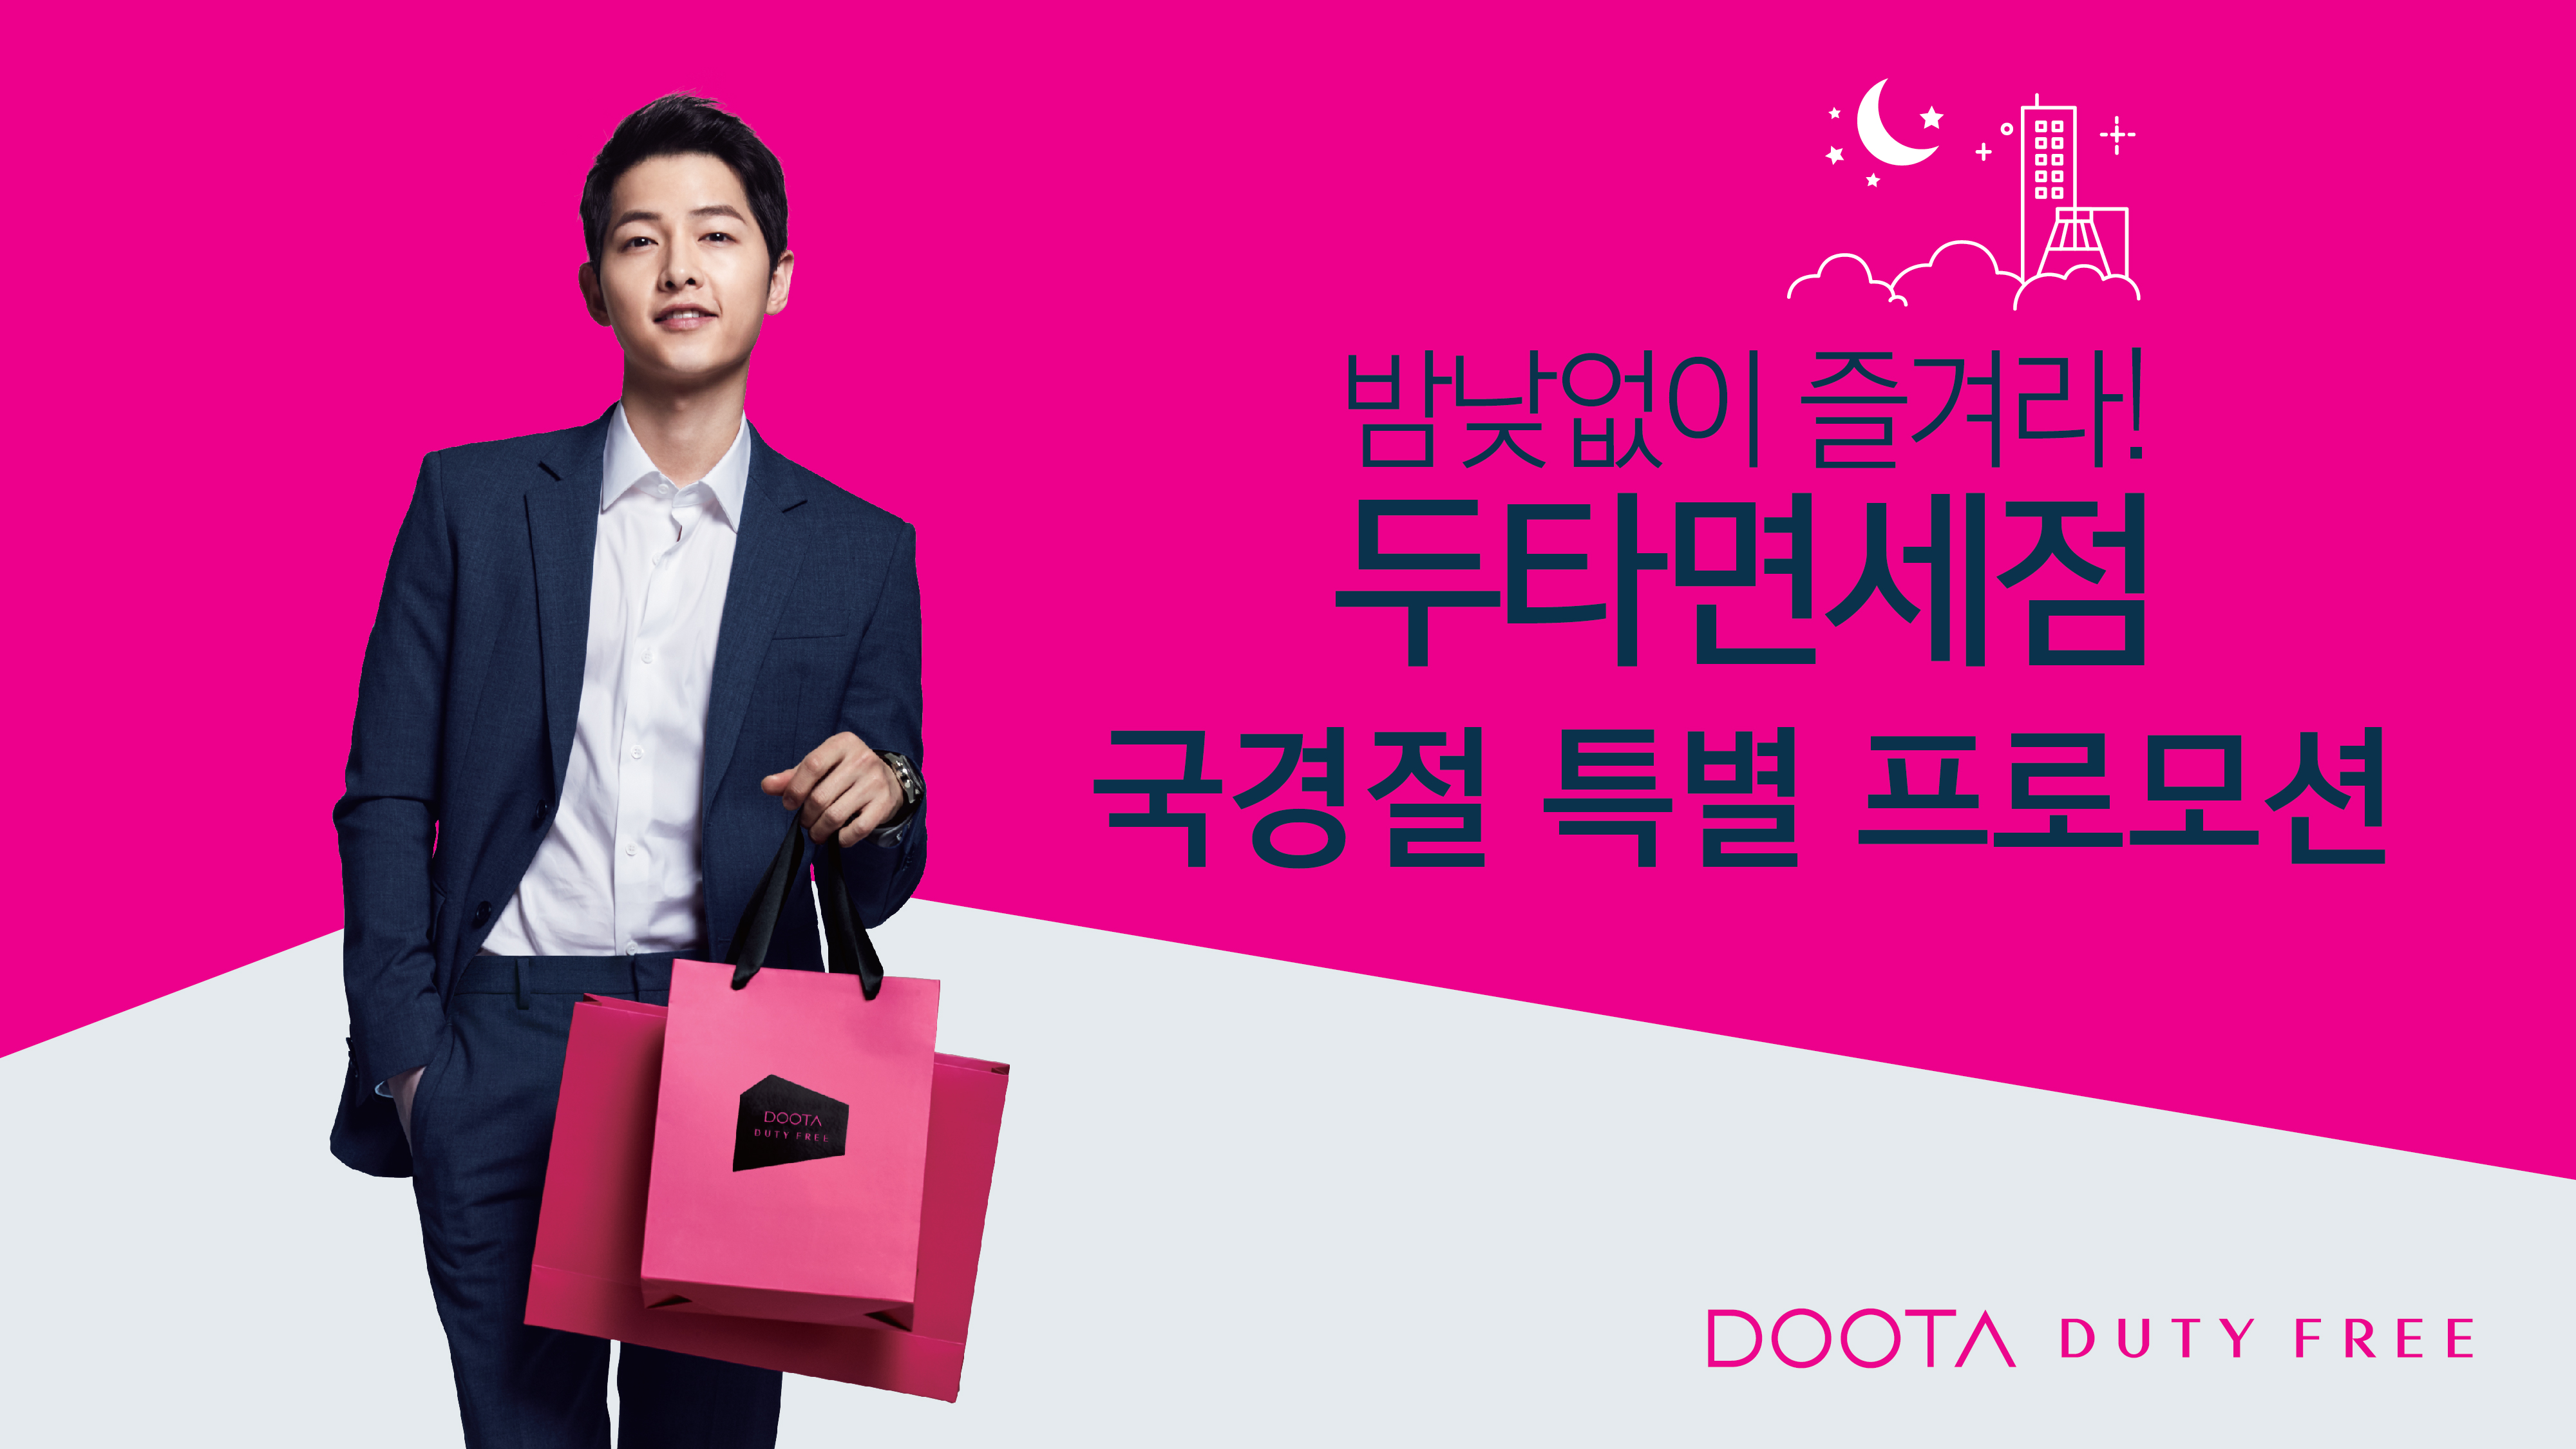 An image of Doota Duty Free Store's special promotional event for Chinese National Day.